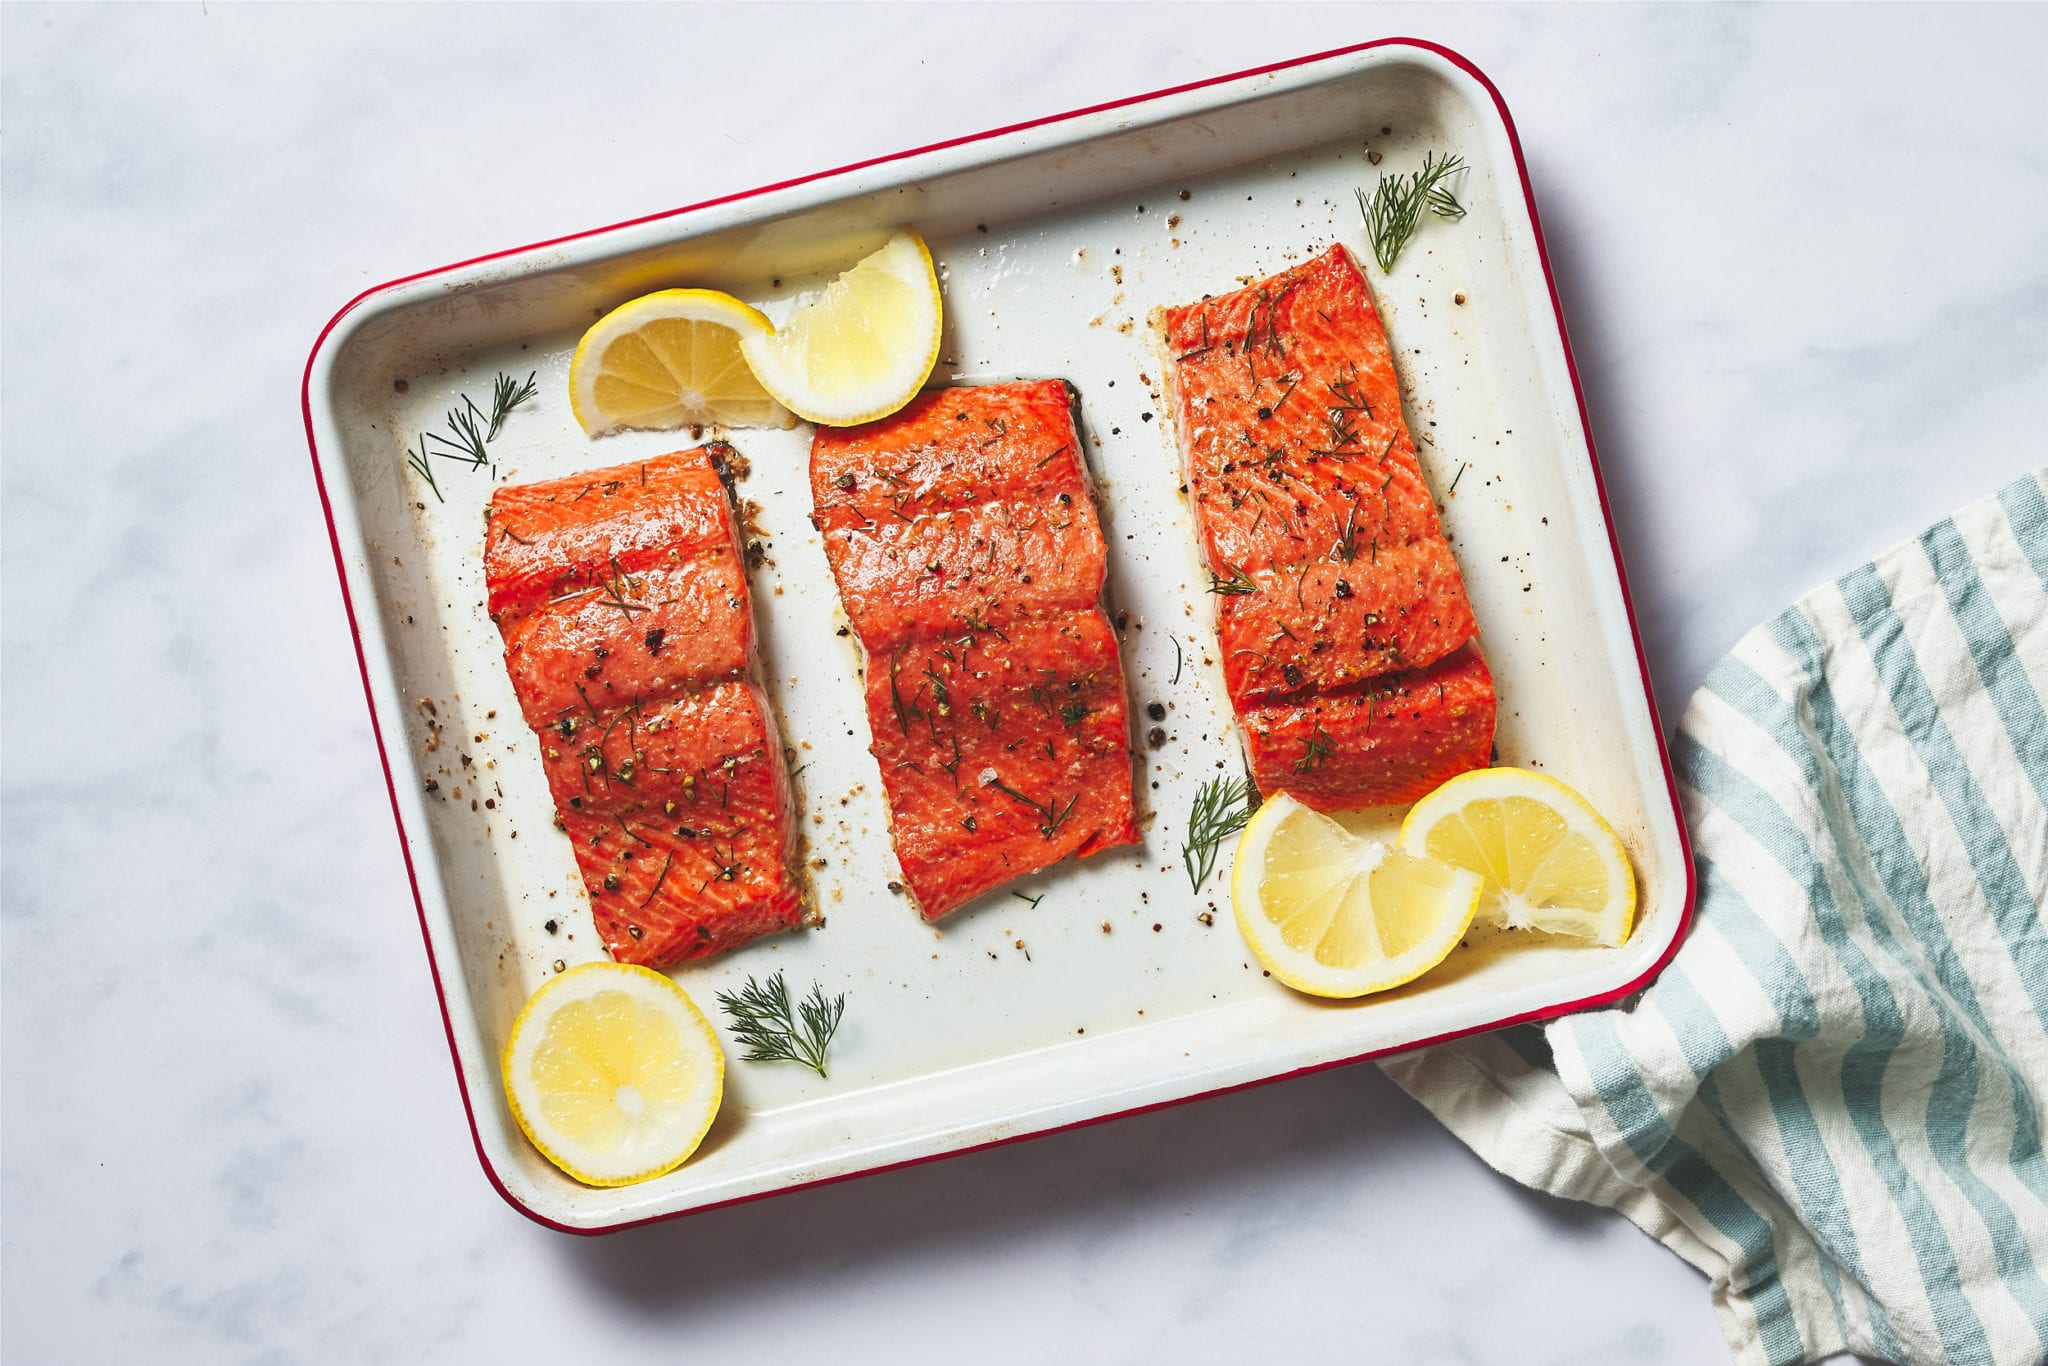 6 Foolproof Ways to Cook Salmon at Home